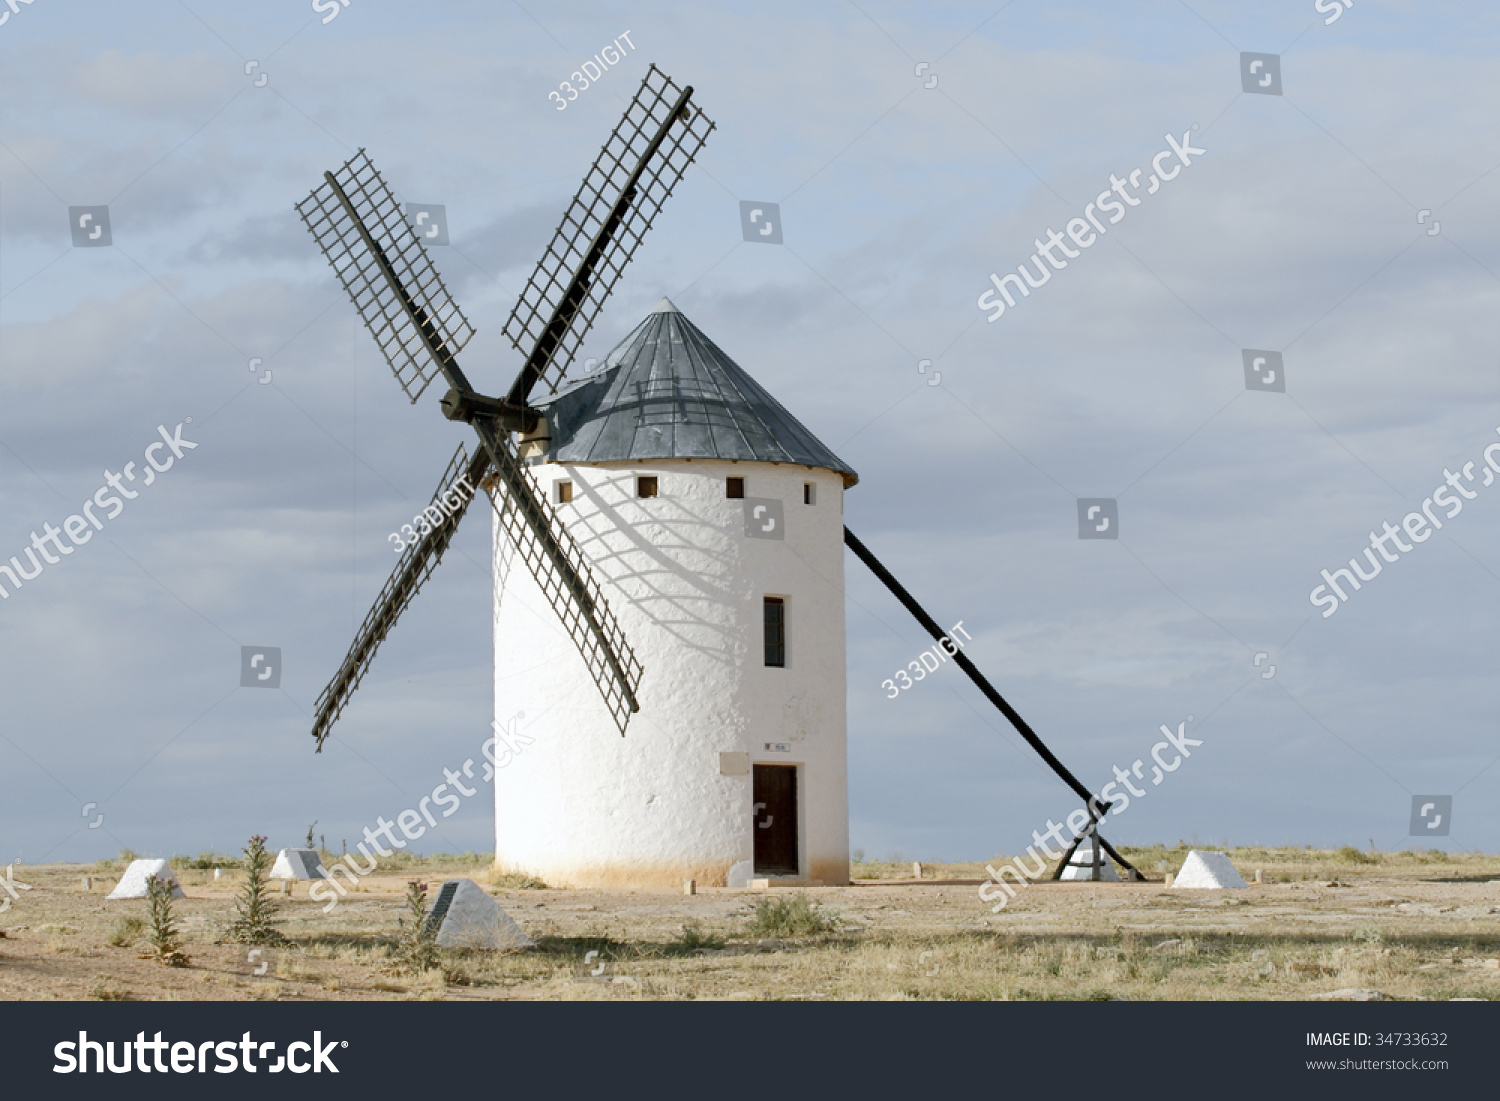 an overview of the medieval period and the novel don quixote by miguel de cervantes Miguel de cervantes as it manifests the poetic direction in which cervantes moved at an early period of life don quixote cervantes' novel don quixote has had.